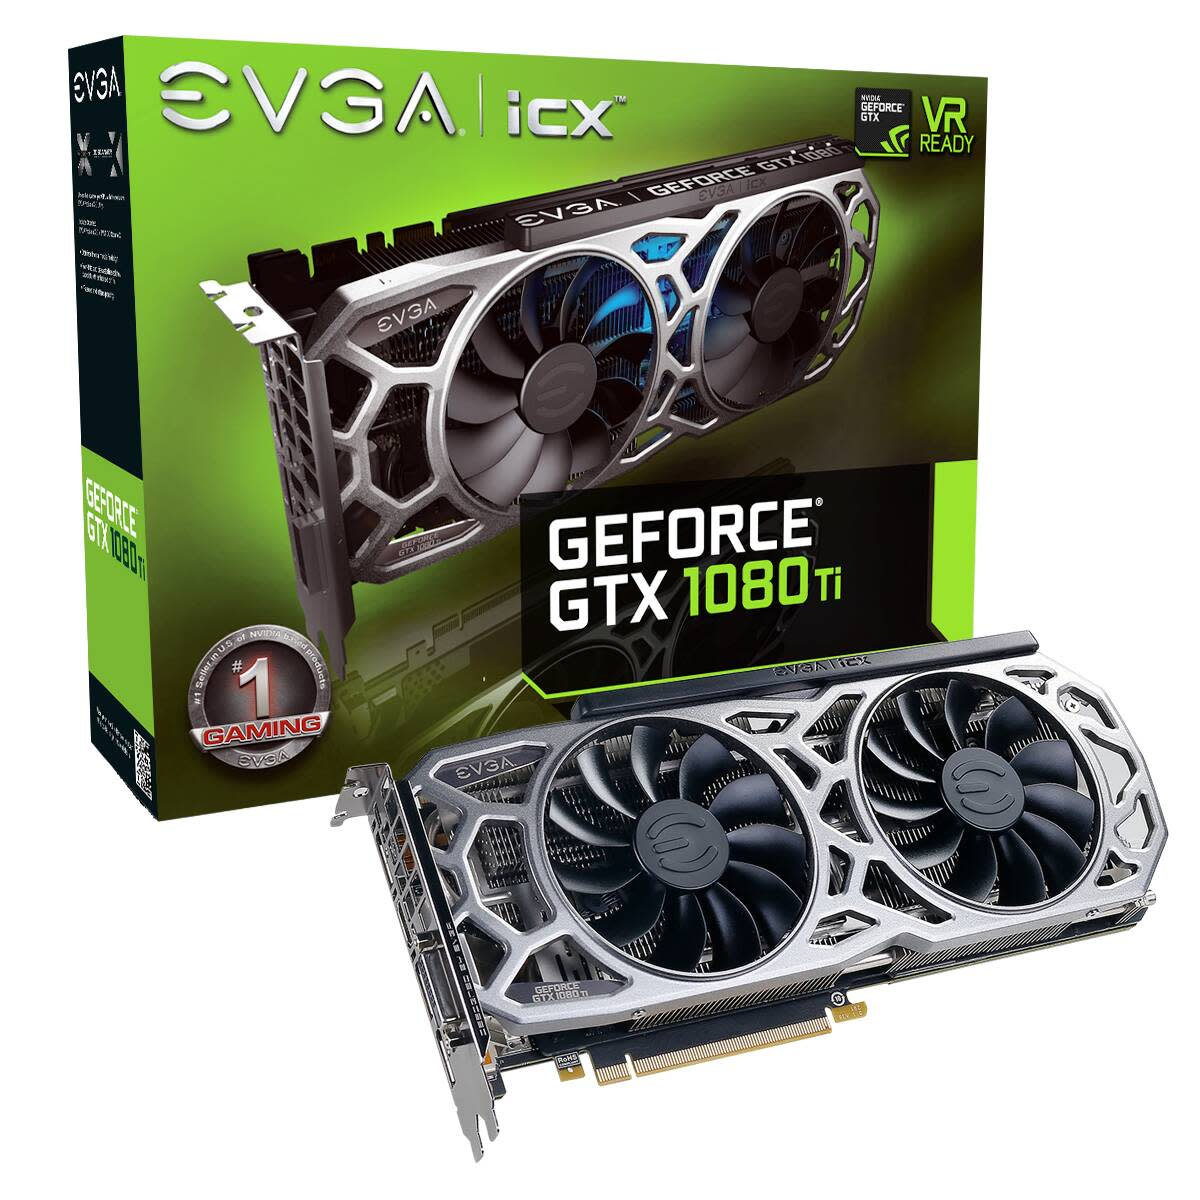 EVGA GTX 1080 Ti SC Gaming Graphics Card Review and Benchmarks